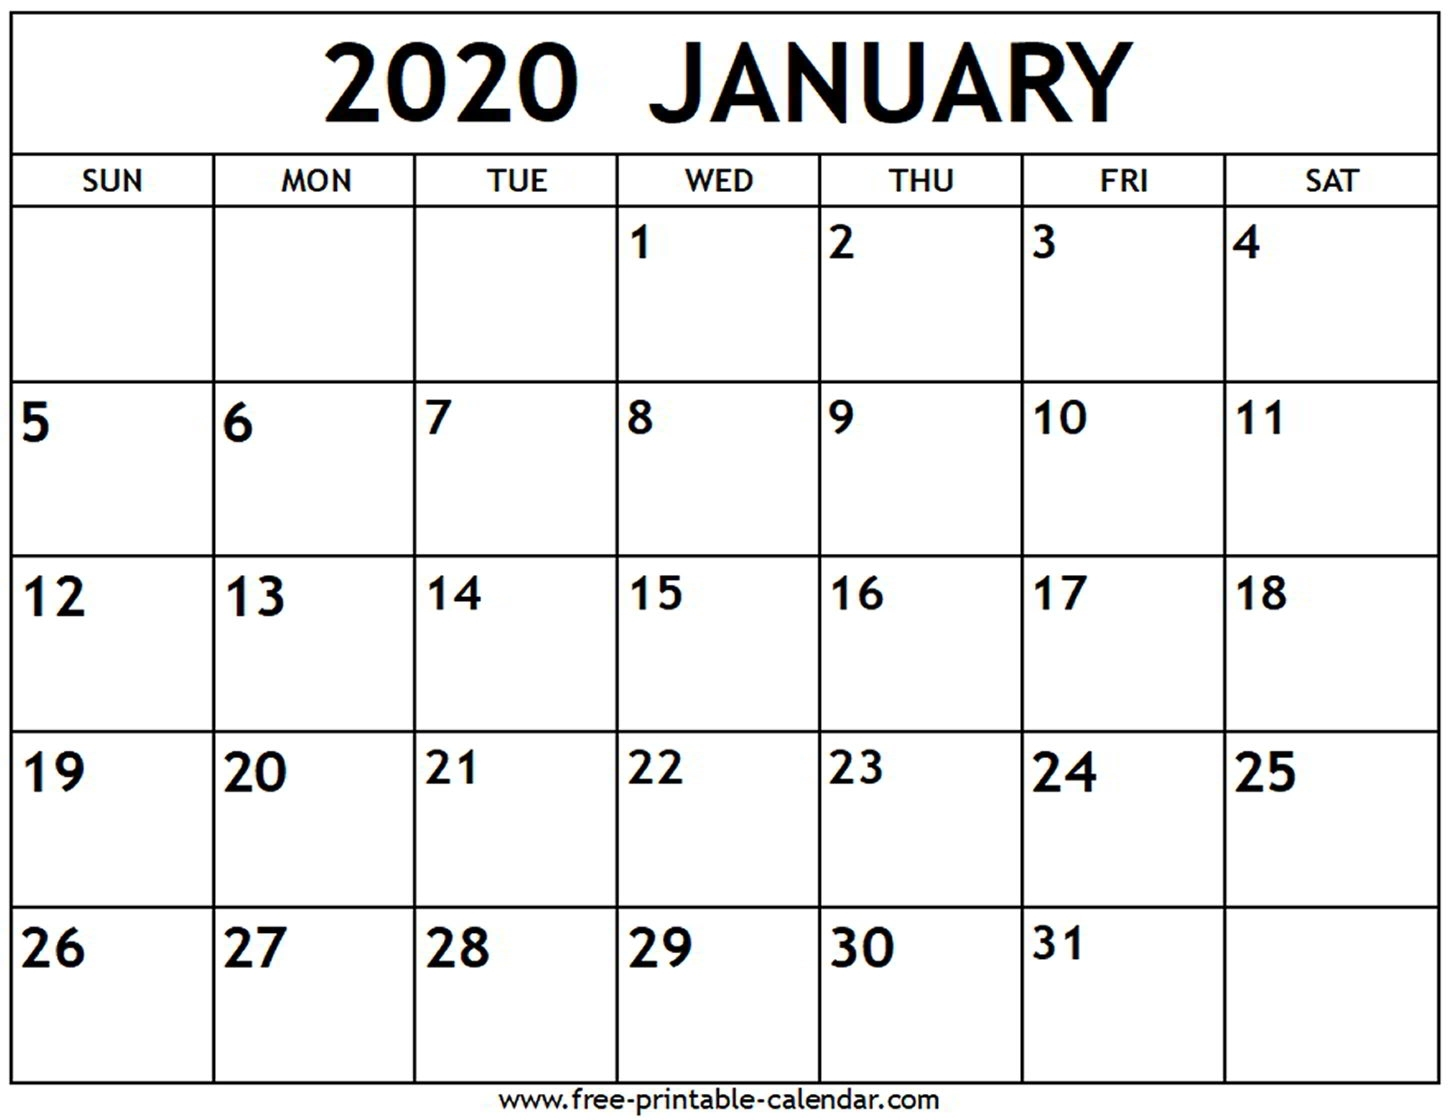 January 2020 Calendar - Free-Printable-Calendar-January 2020 Us Calendar